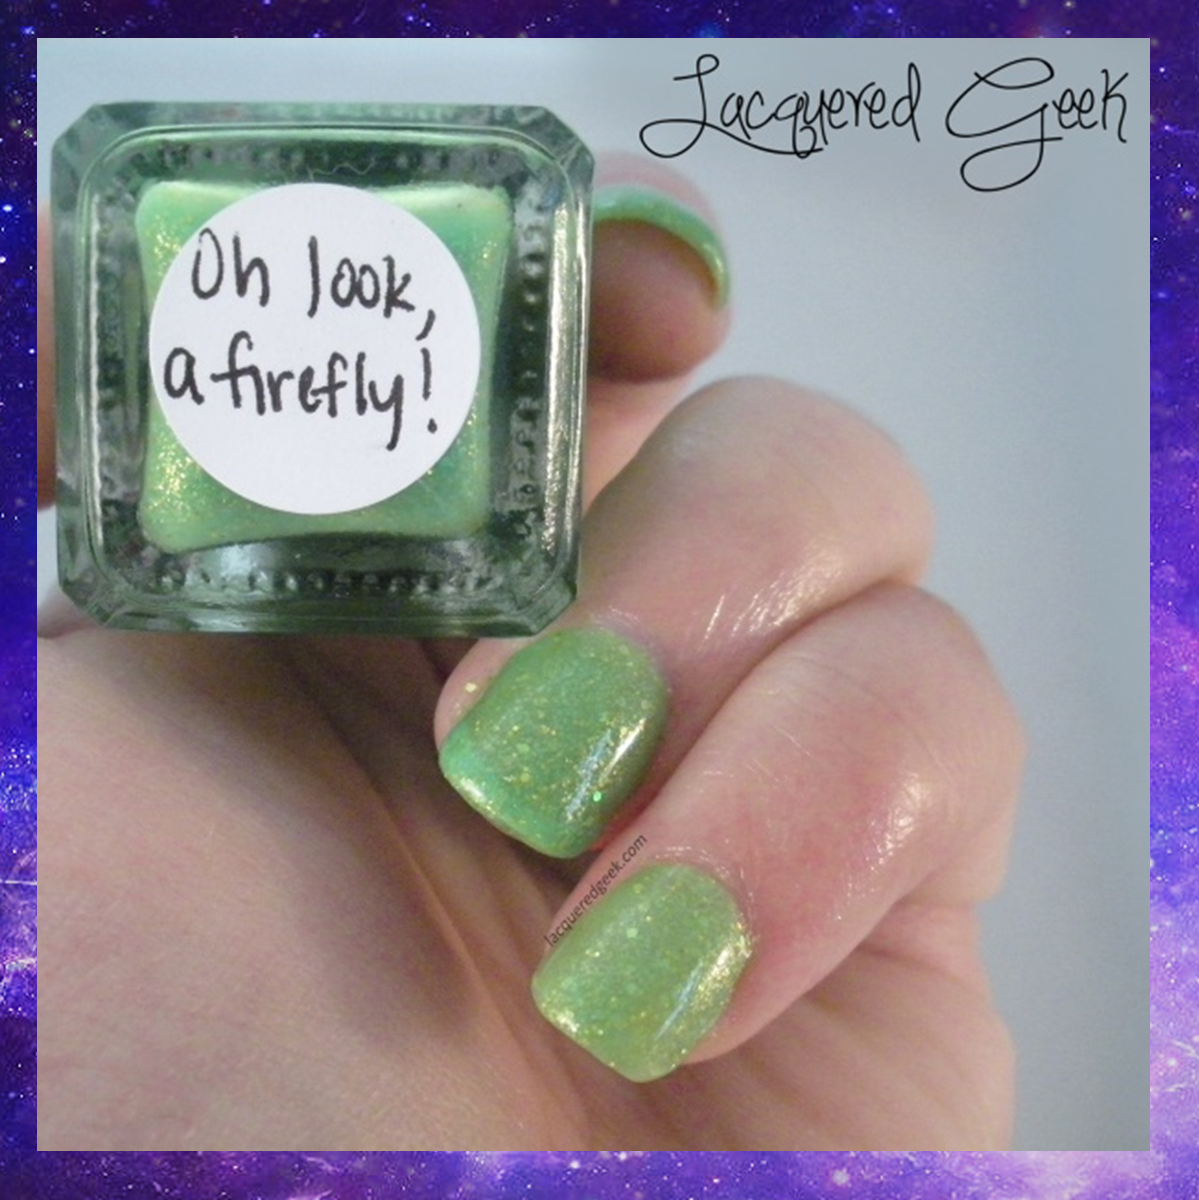 the ladies of peter pan duo sweet heart polish oh look, a firefly